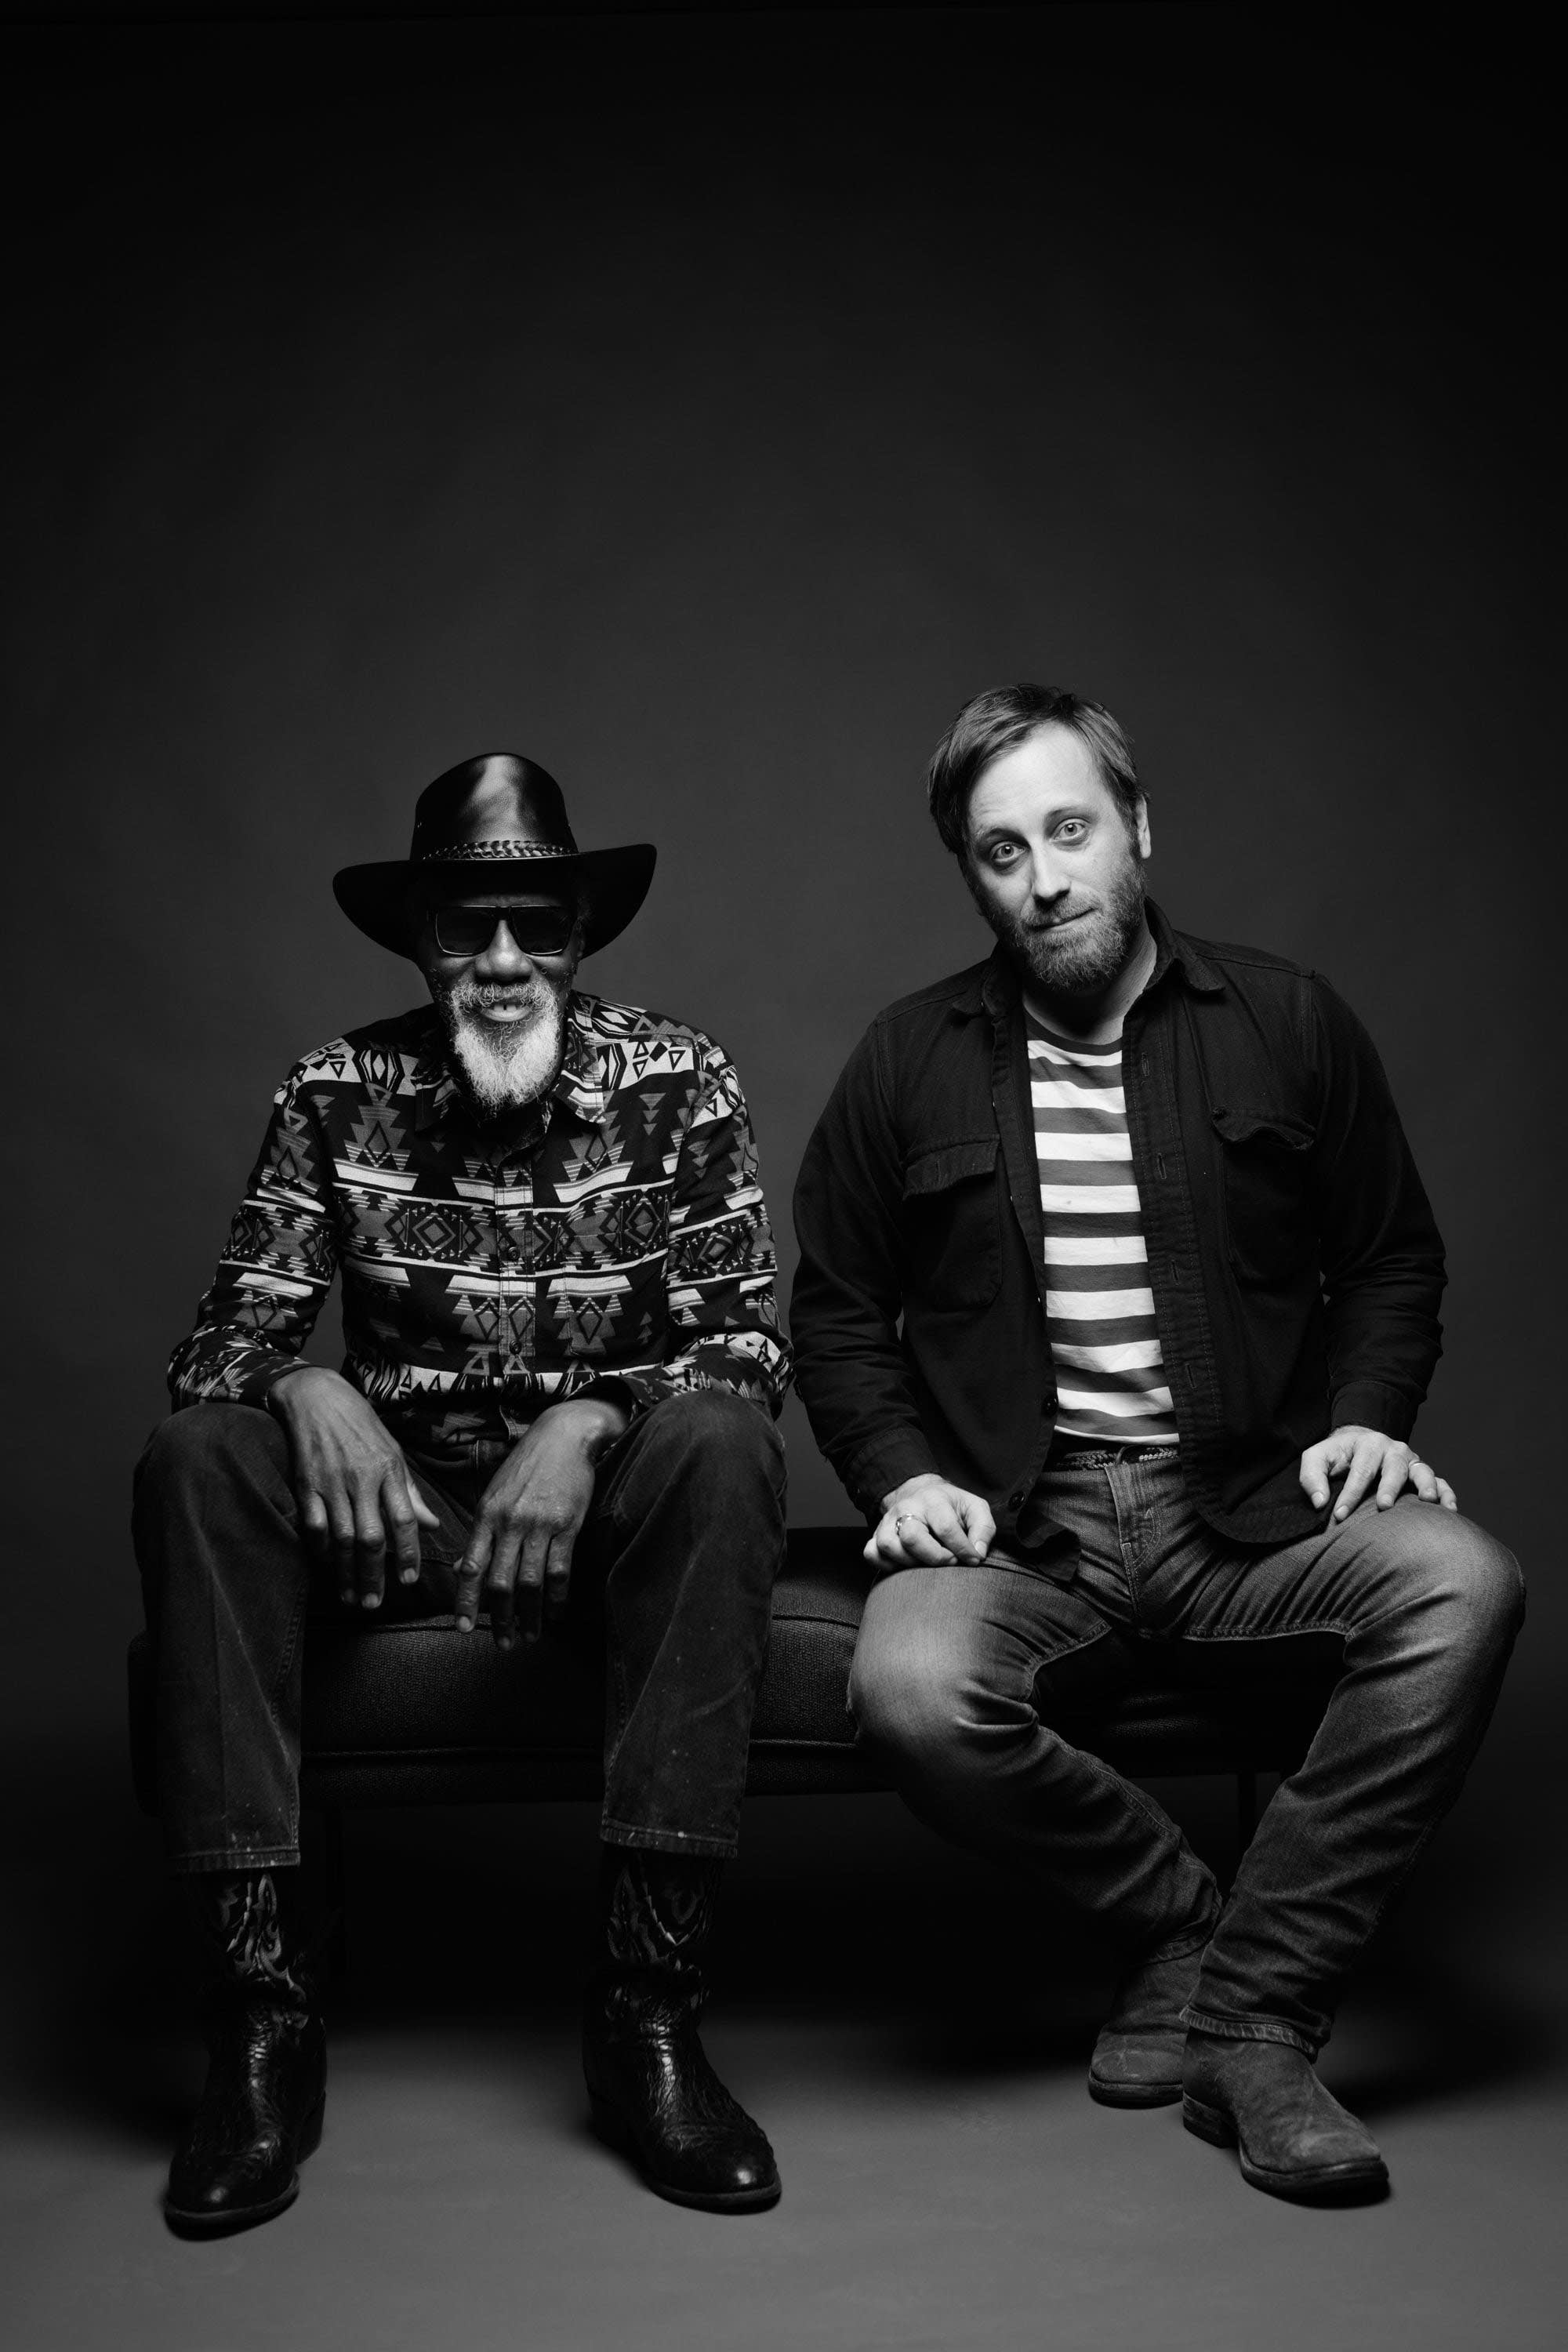 Dan Auerbach and the Easy Eye Sound Revue visit The Current